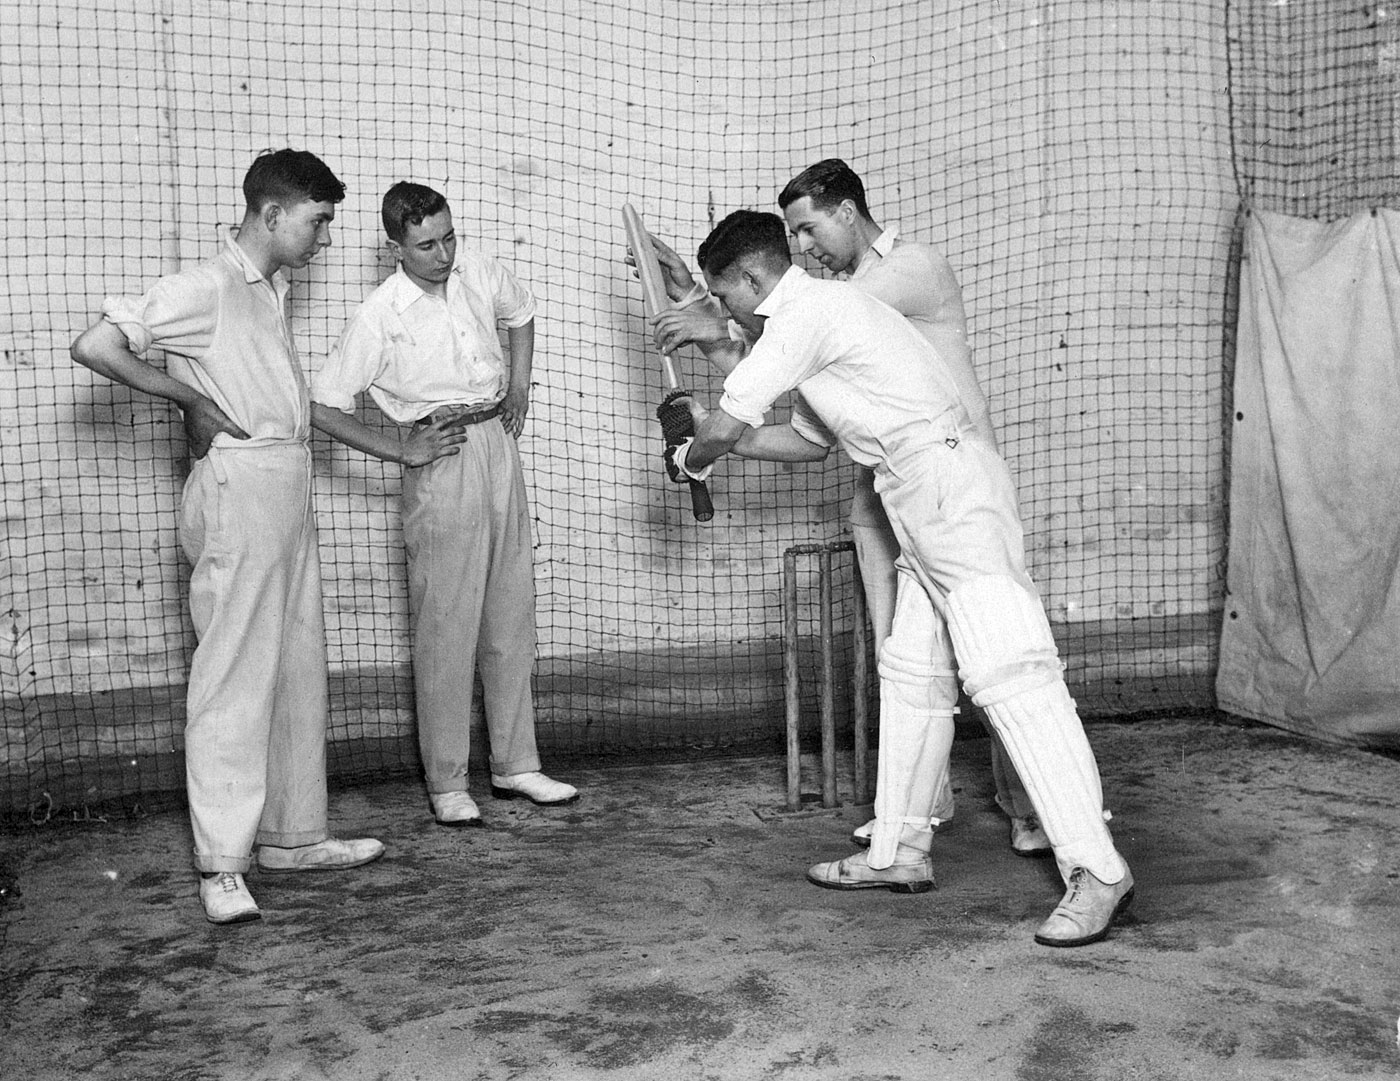 A batting tutorial at Faulkner's cricket school in Richmond, circa 1930, where several distinguished cricketers were to be found, despite the lack of amenities